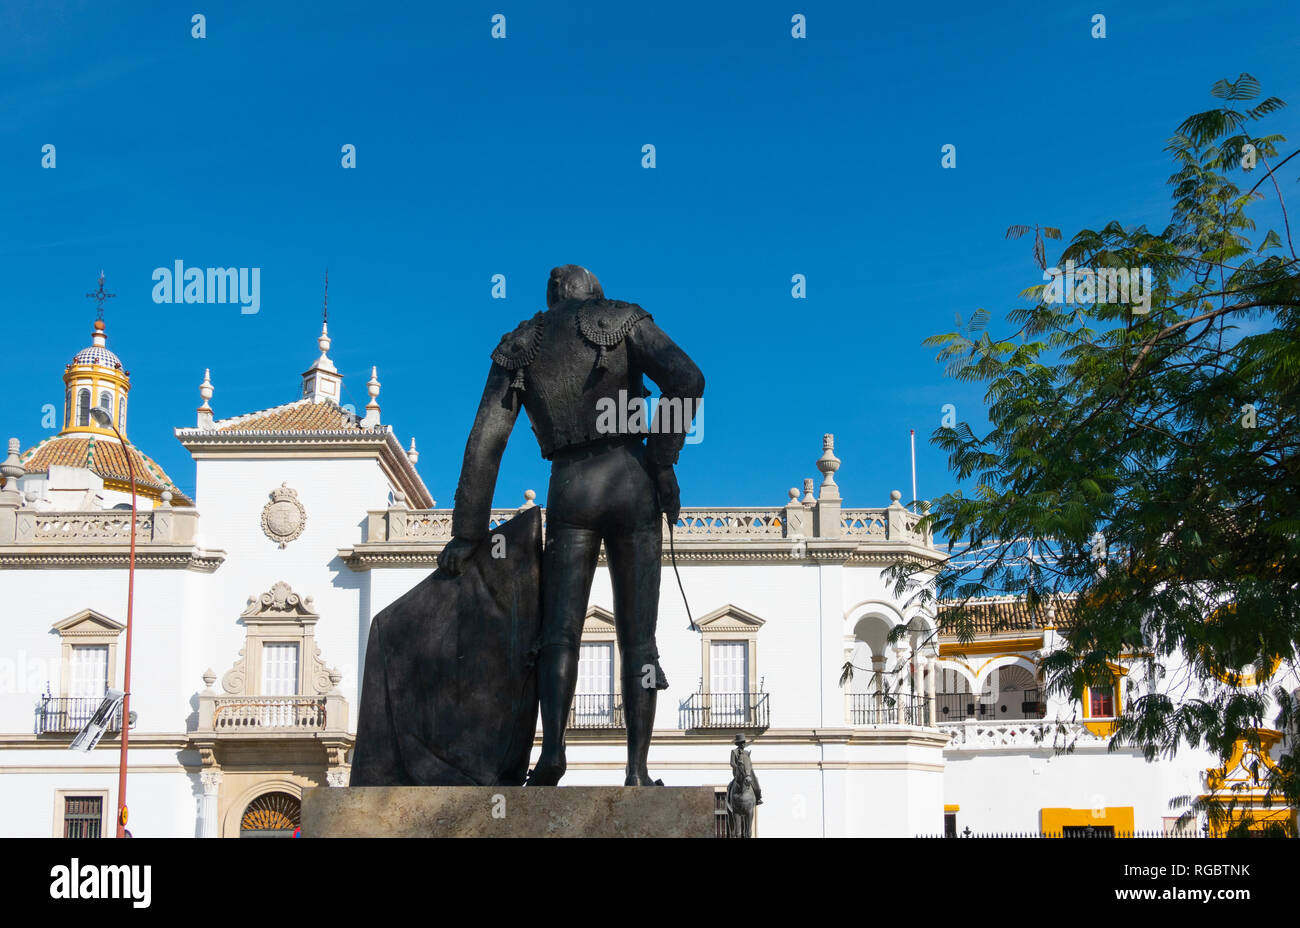 Bullfighter statue of Manolo Vazquez across from the Seville bullring - Stock Image